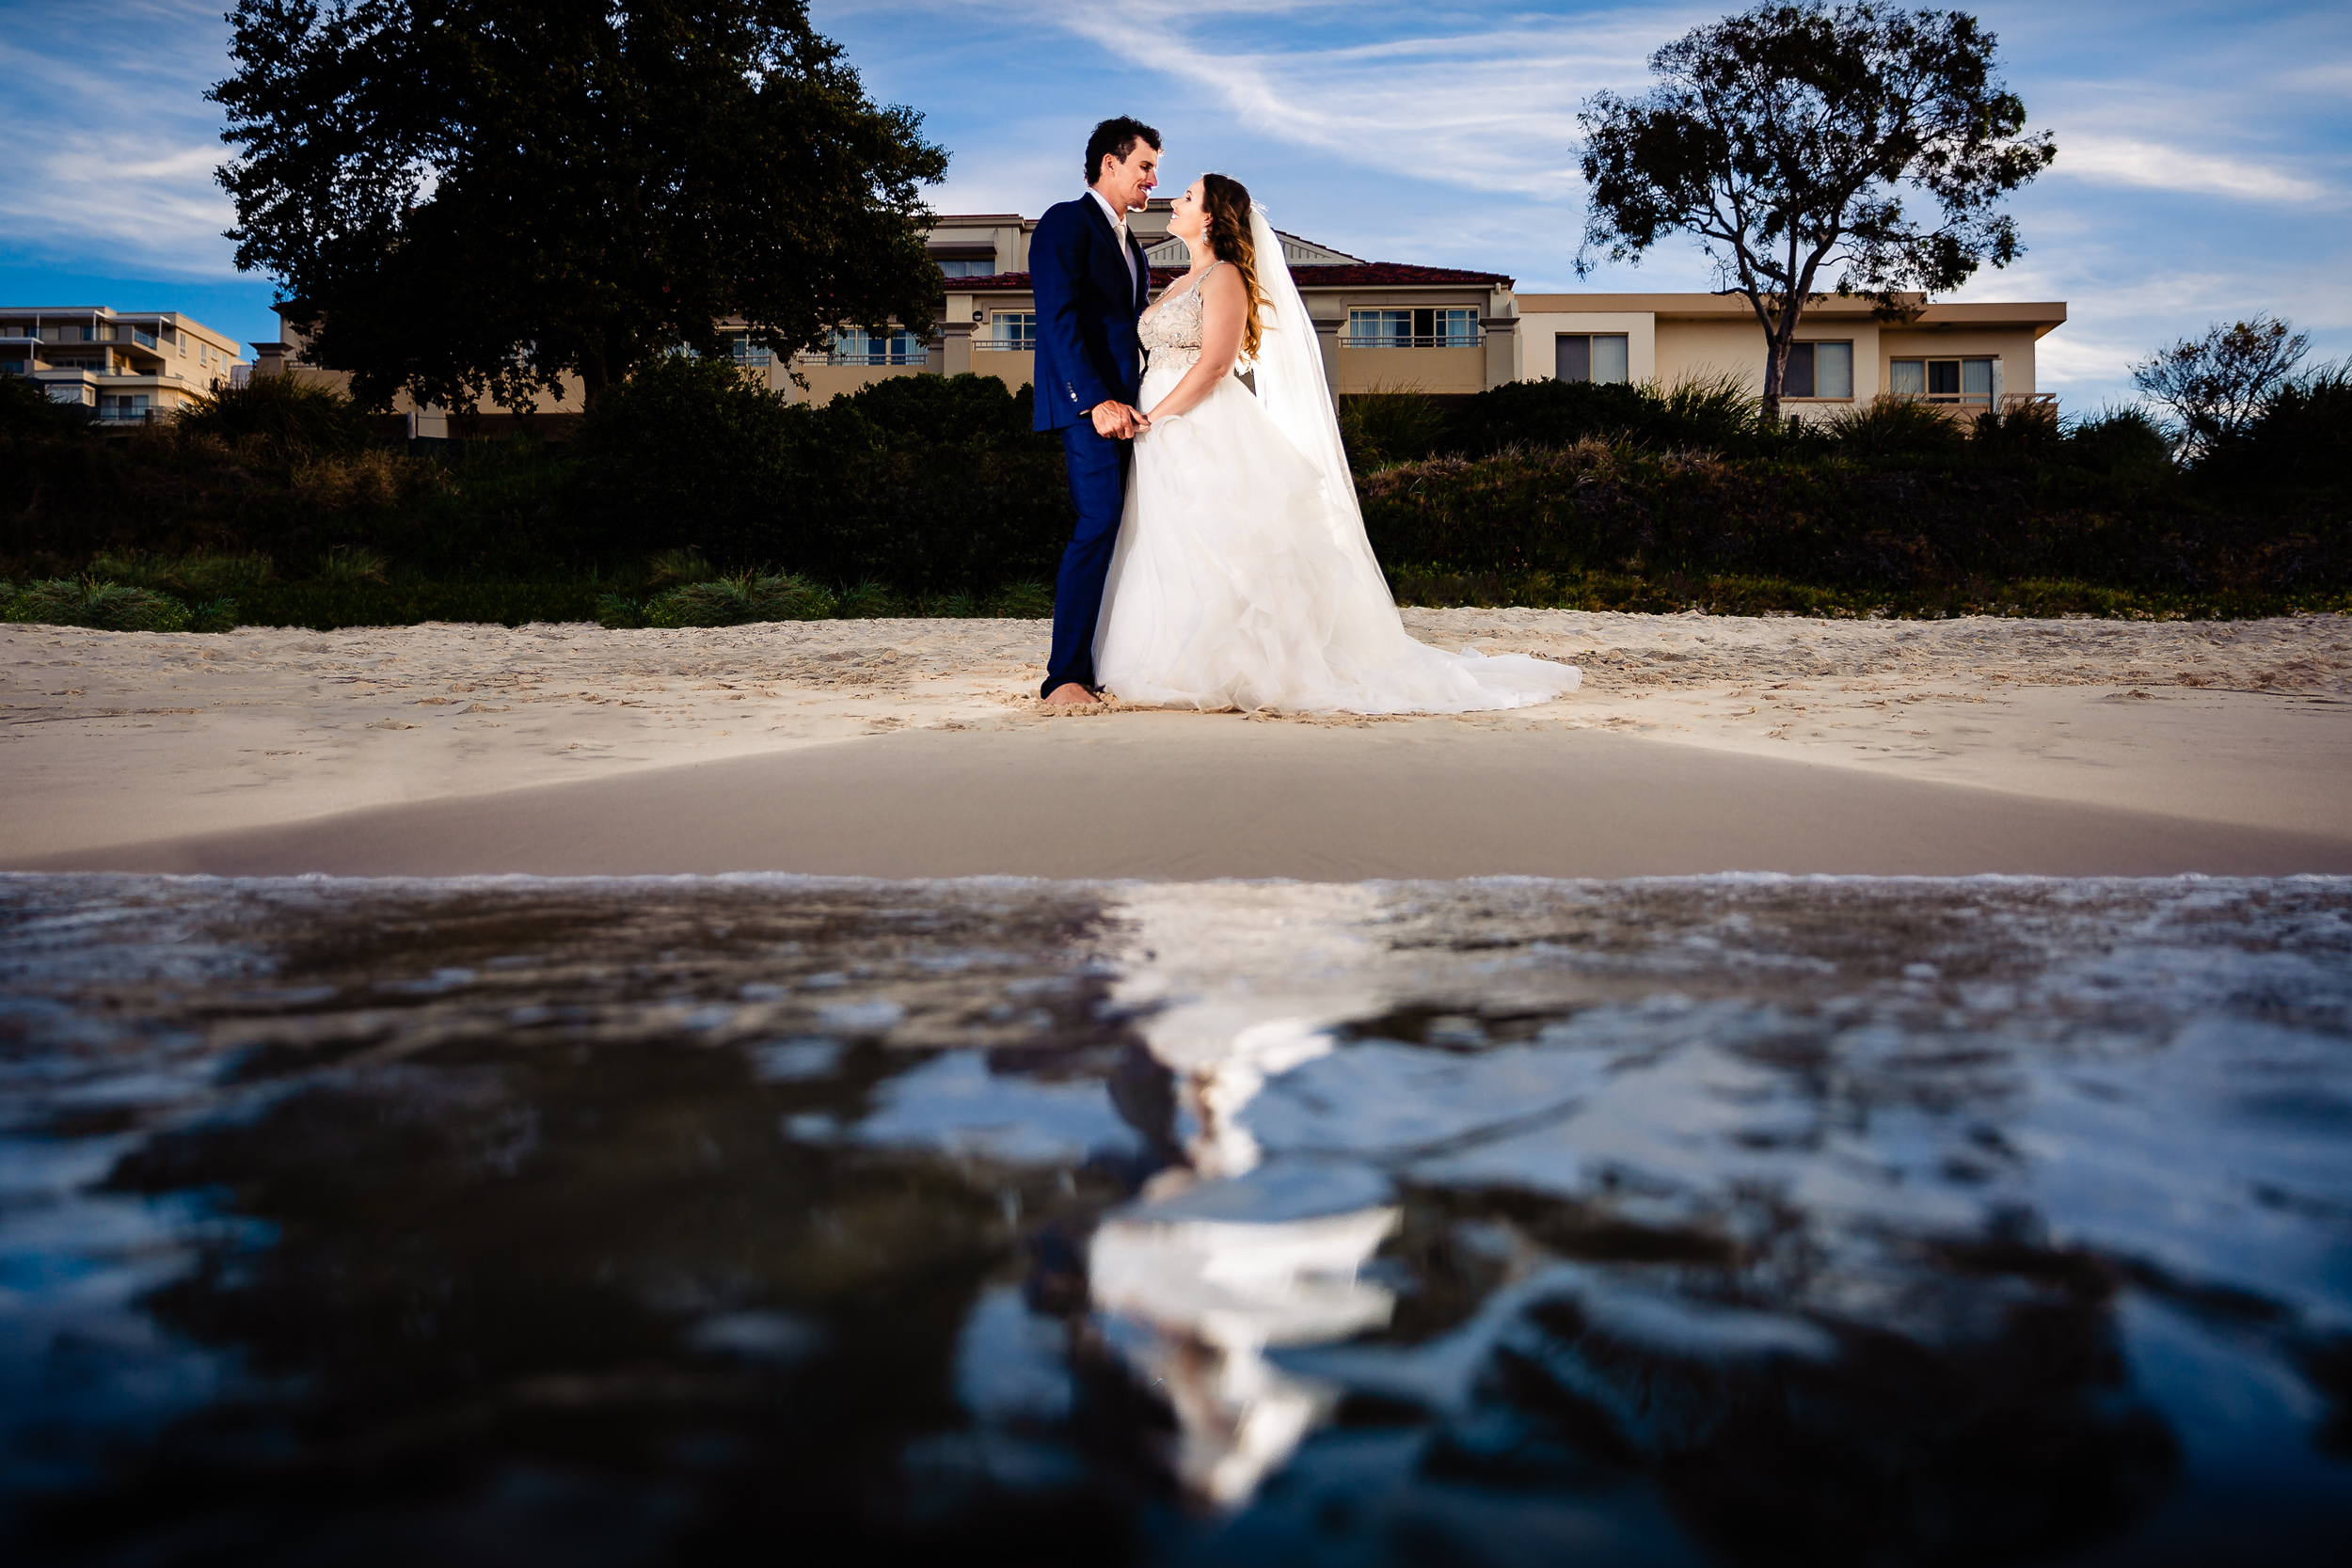 wedding-photography-whitesands-shoal-bay-port-stephens-kaari-jackson-6.jpg